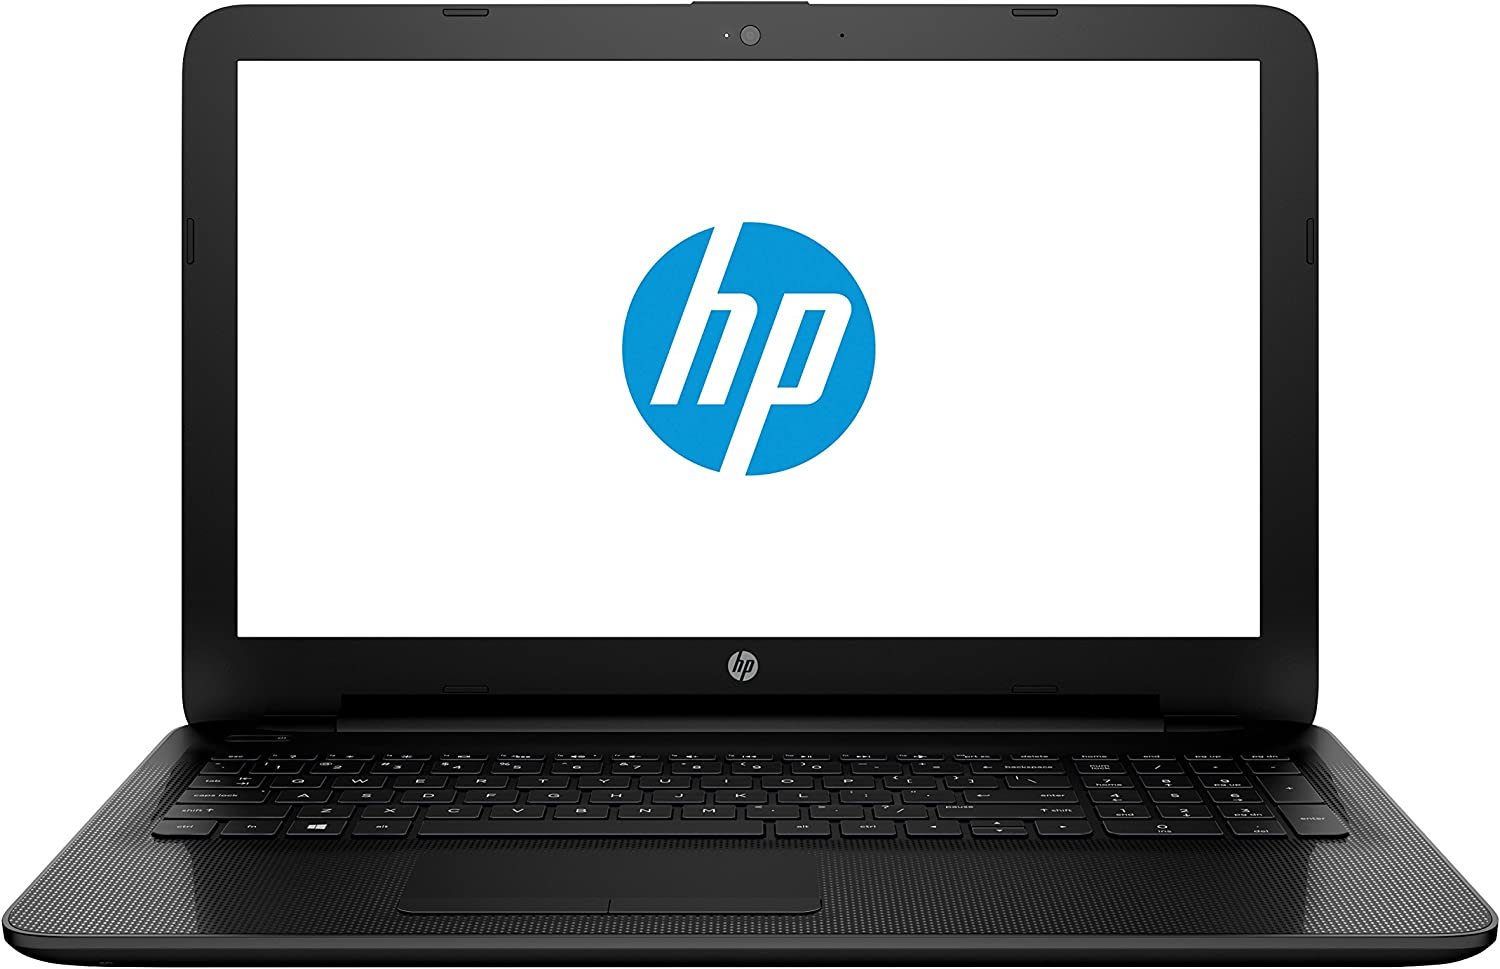 "HP 15-ac137nr 15.6"" Laptop Computer - Textured Diamond Pattern in Black"